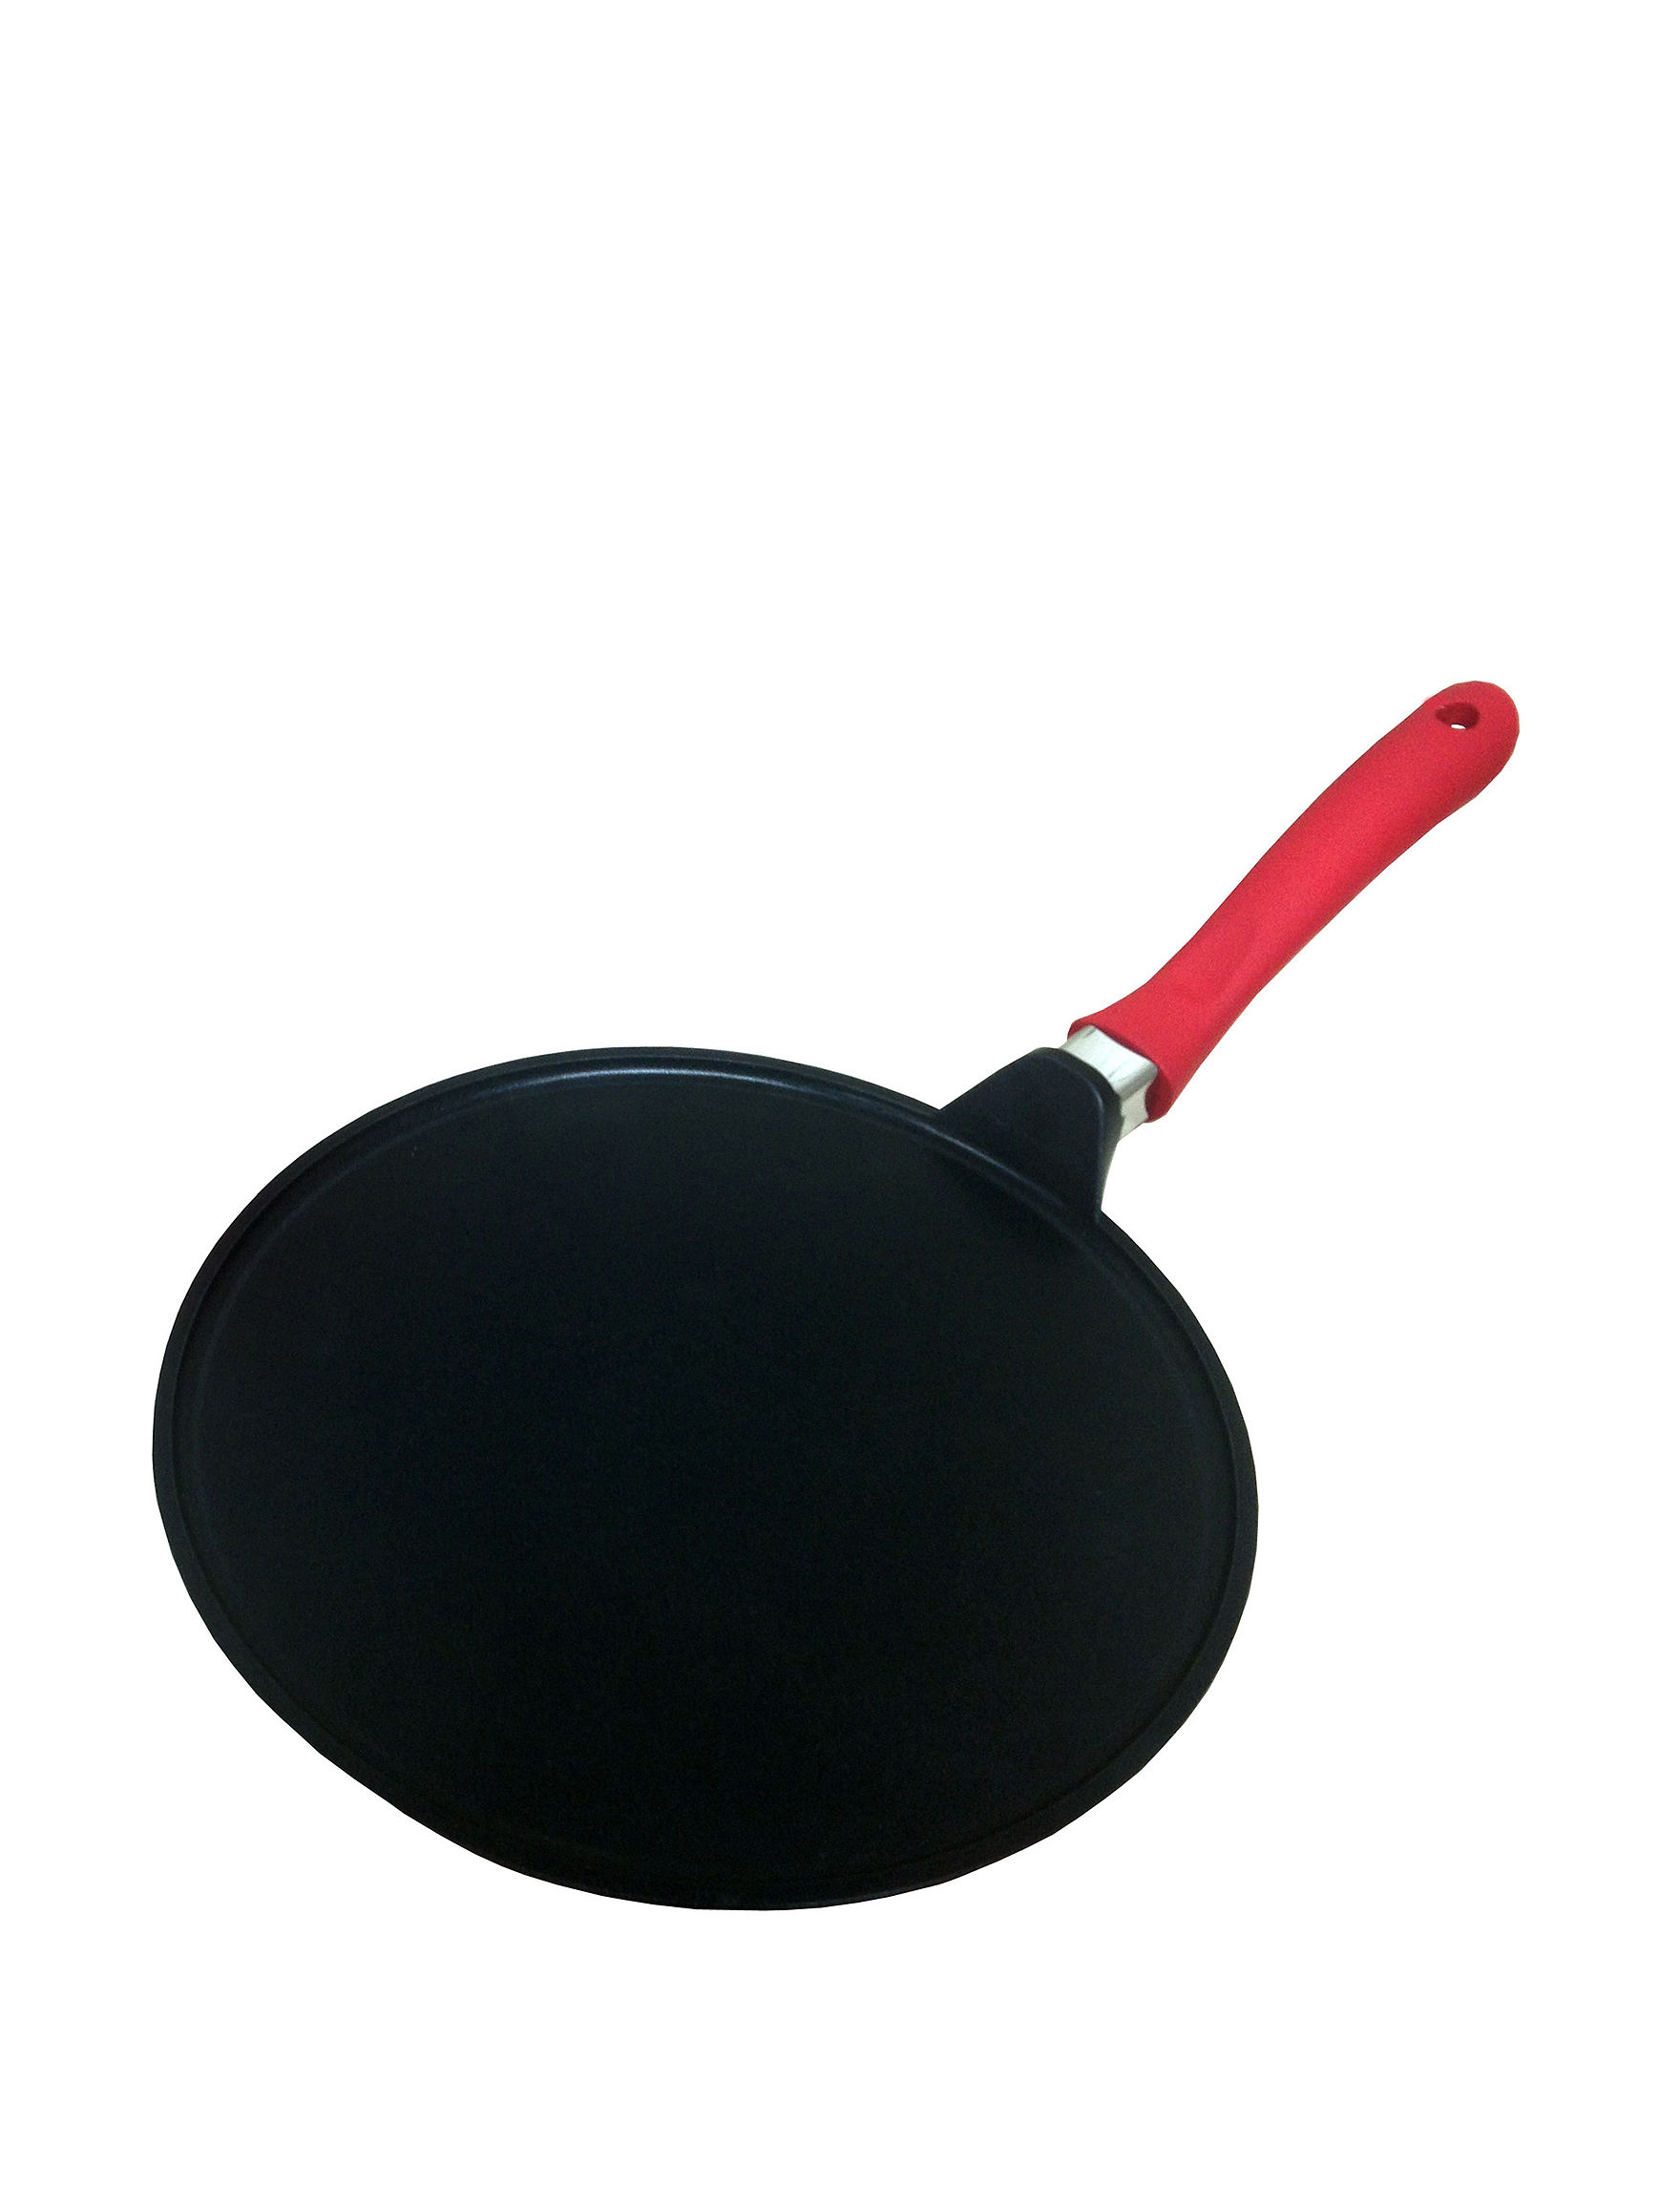 IMUSA Black / Red Frying Pans & Skillets Cookware